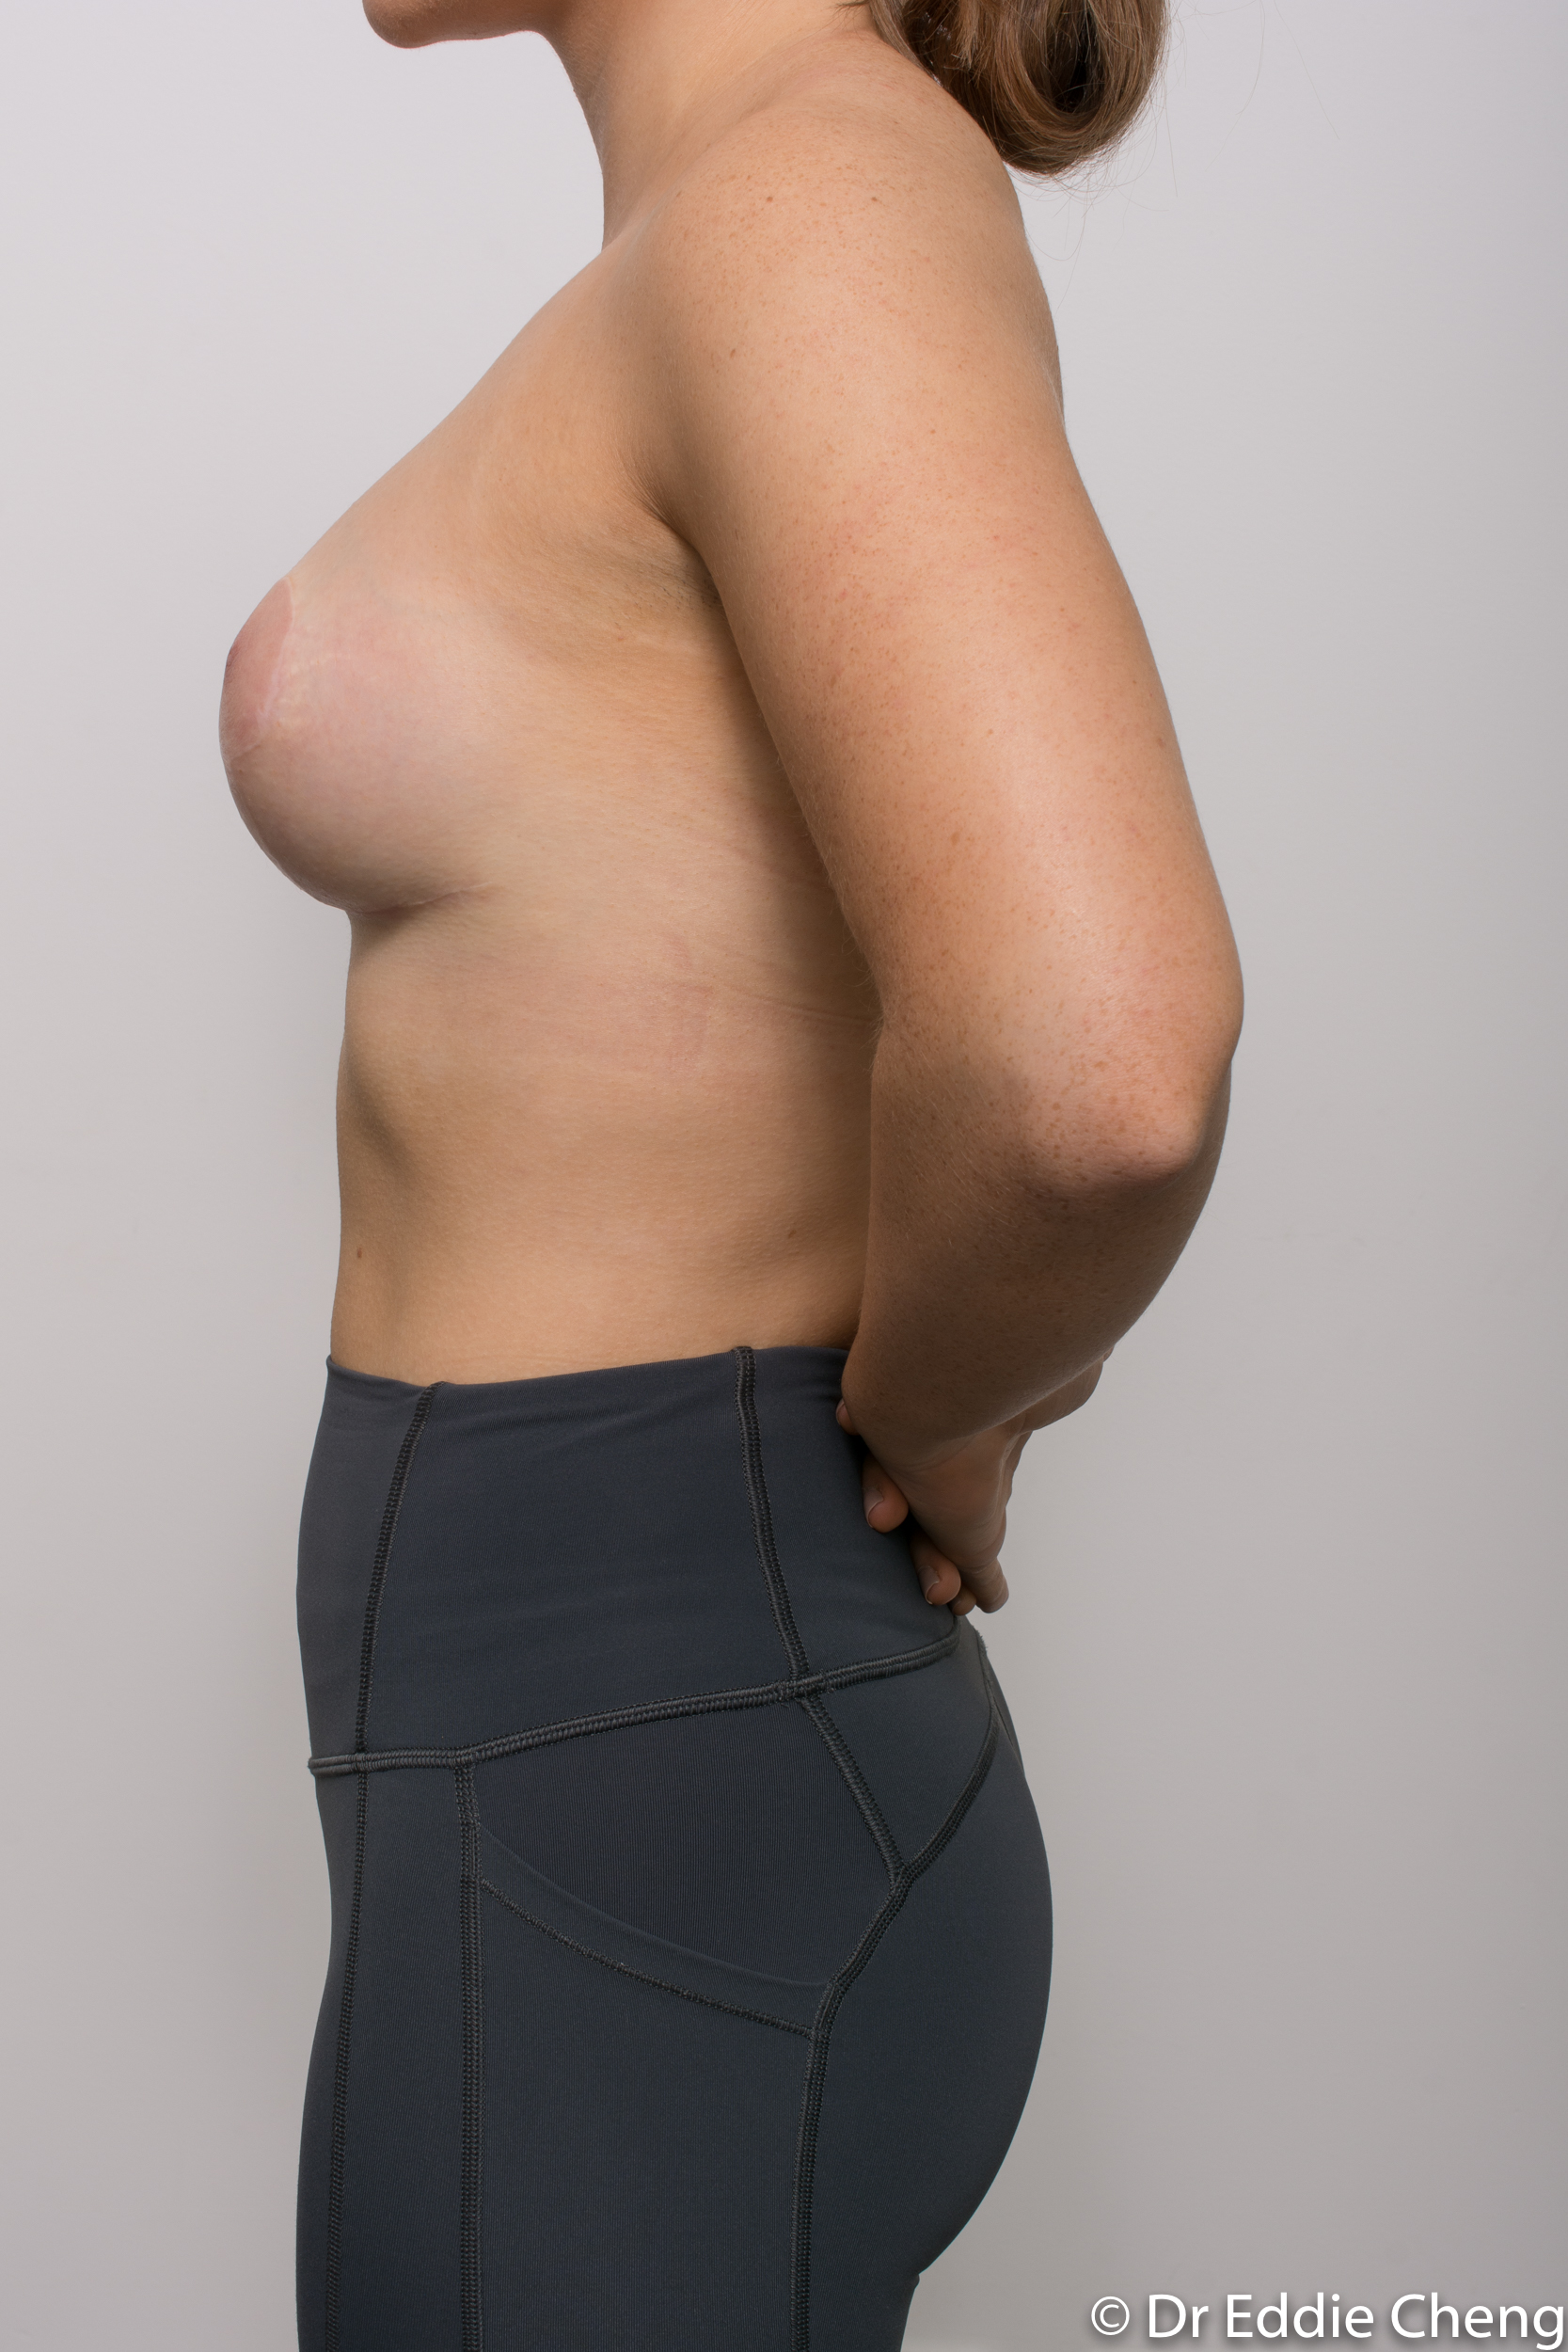 2 stage procedure tuberous breasts dr eddie cheng brisbane surgeon pre and post operative images -3-2